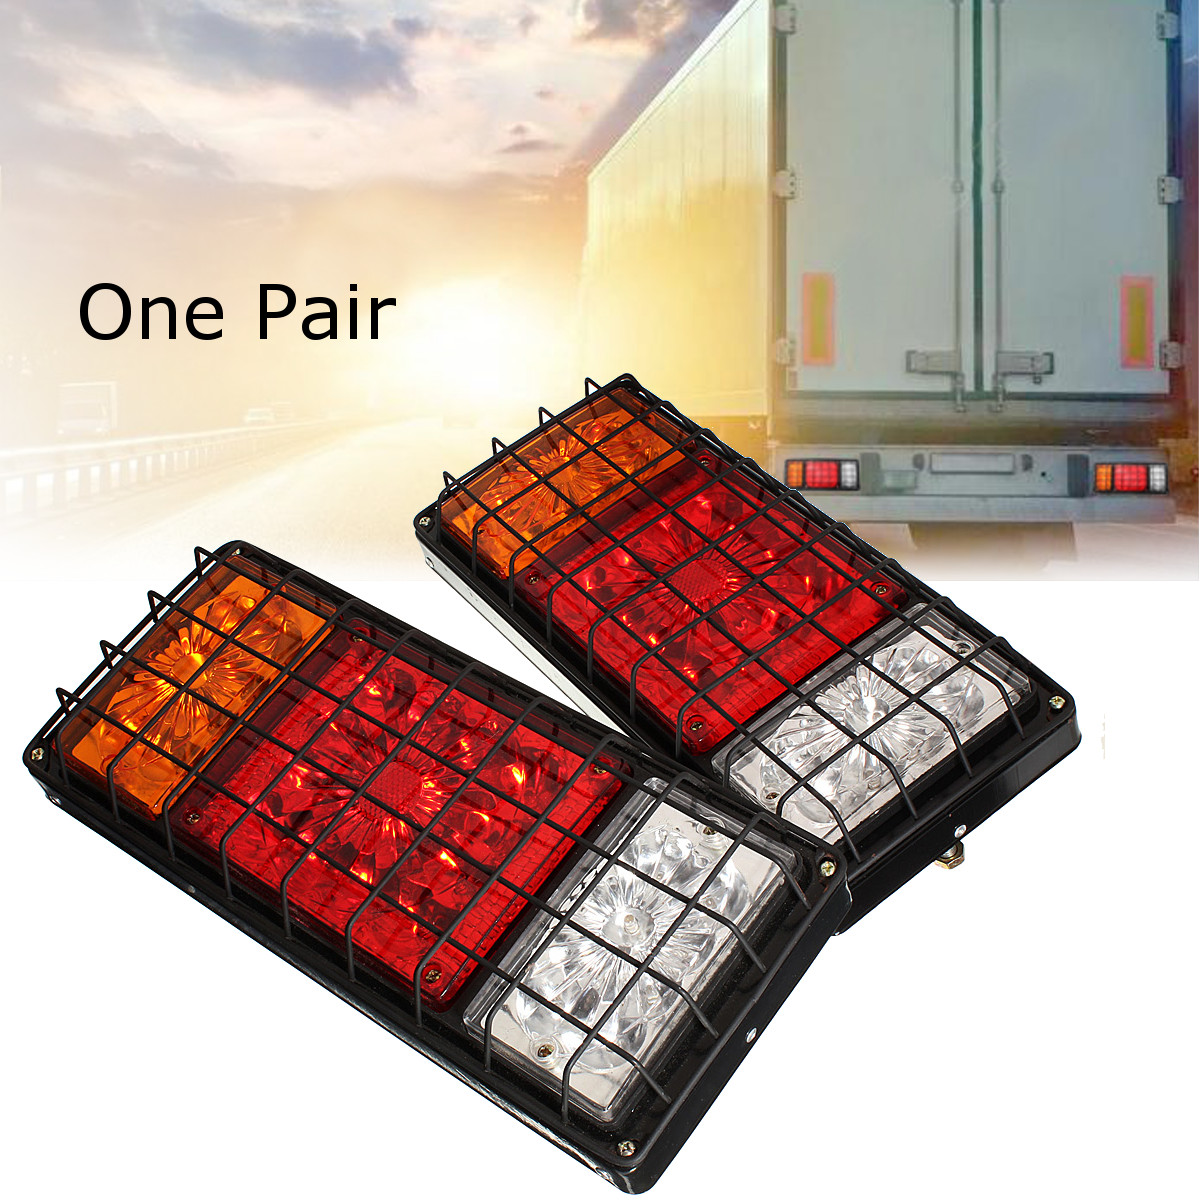 1 Pair 12v/24v LED Stop Rear Turn Signal Stop Rear Tail Indicator Lights Reverse Lamps Trailer Truck Lorry